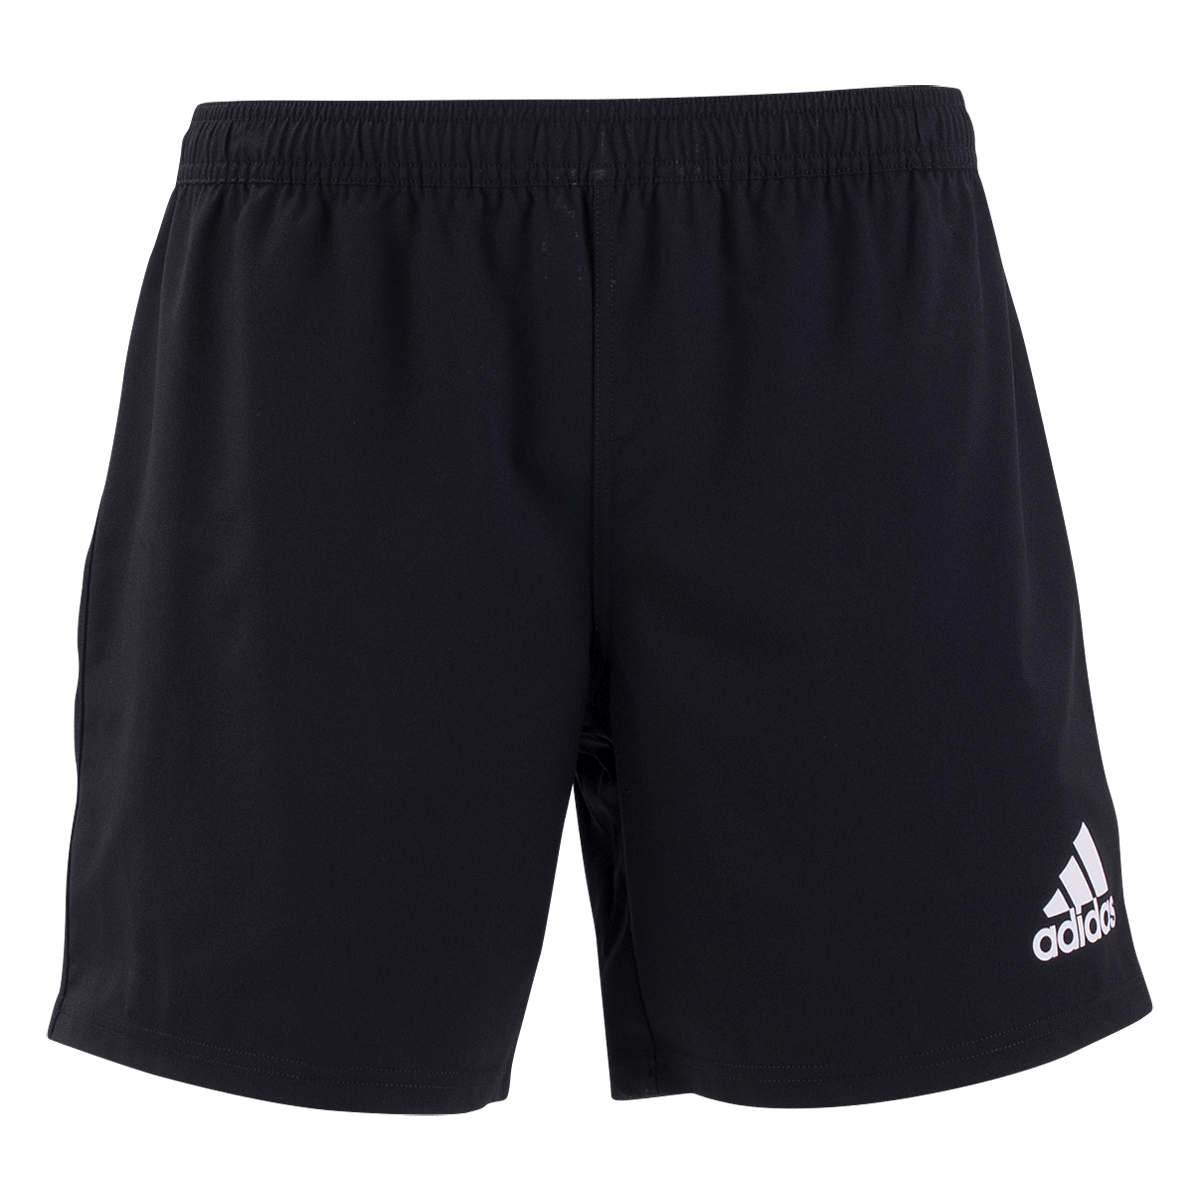 adidas 19 Black/White Youth 3 Stripe Shorts